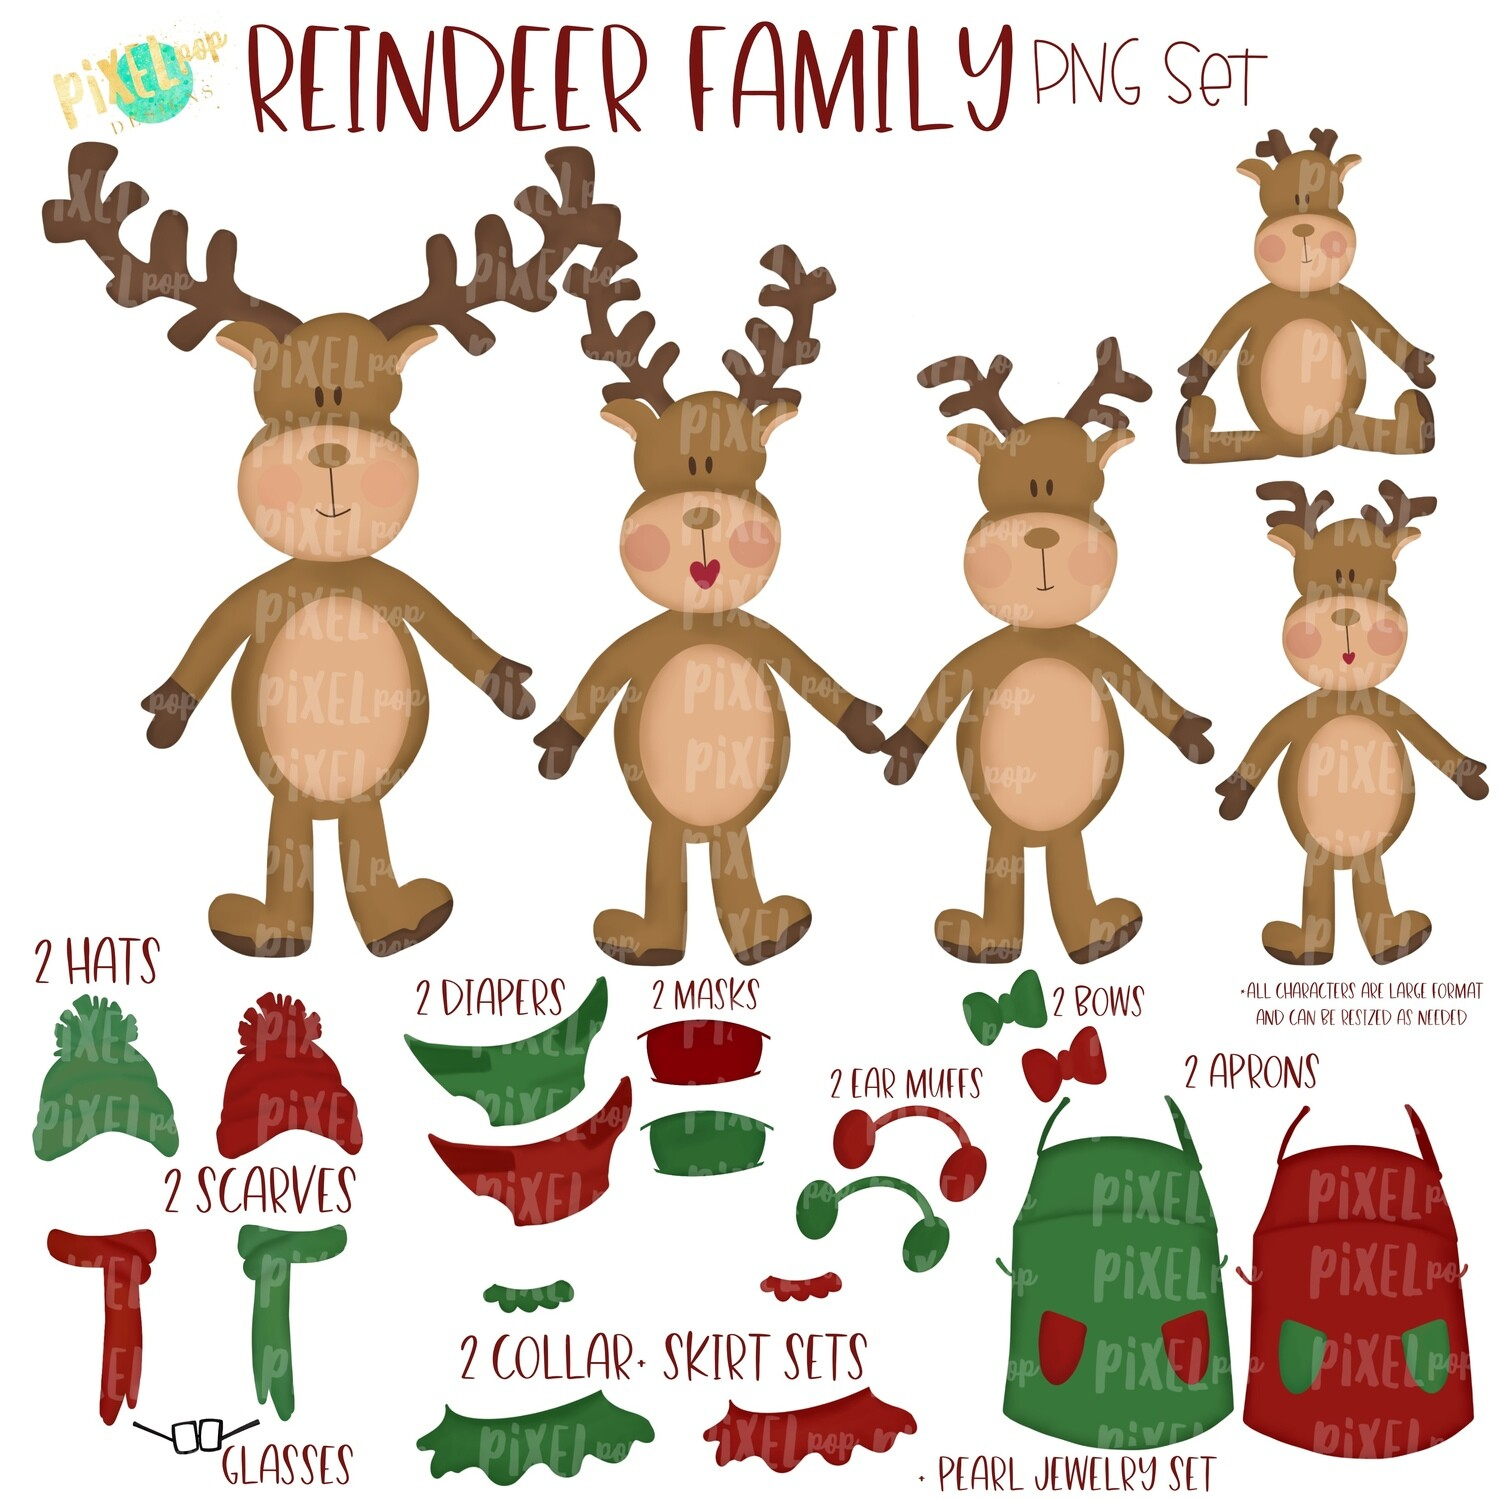 Reindeer Family PNG Set with Accessories | Reindeer Ornament Images | Christmas PNG | Reindeer Design | Sublimation Art |  | Printable